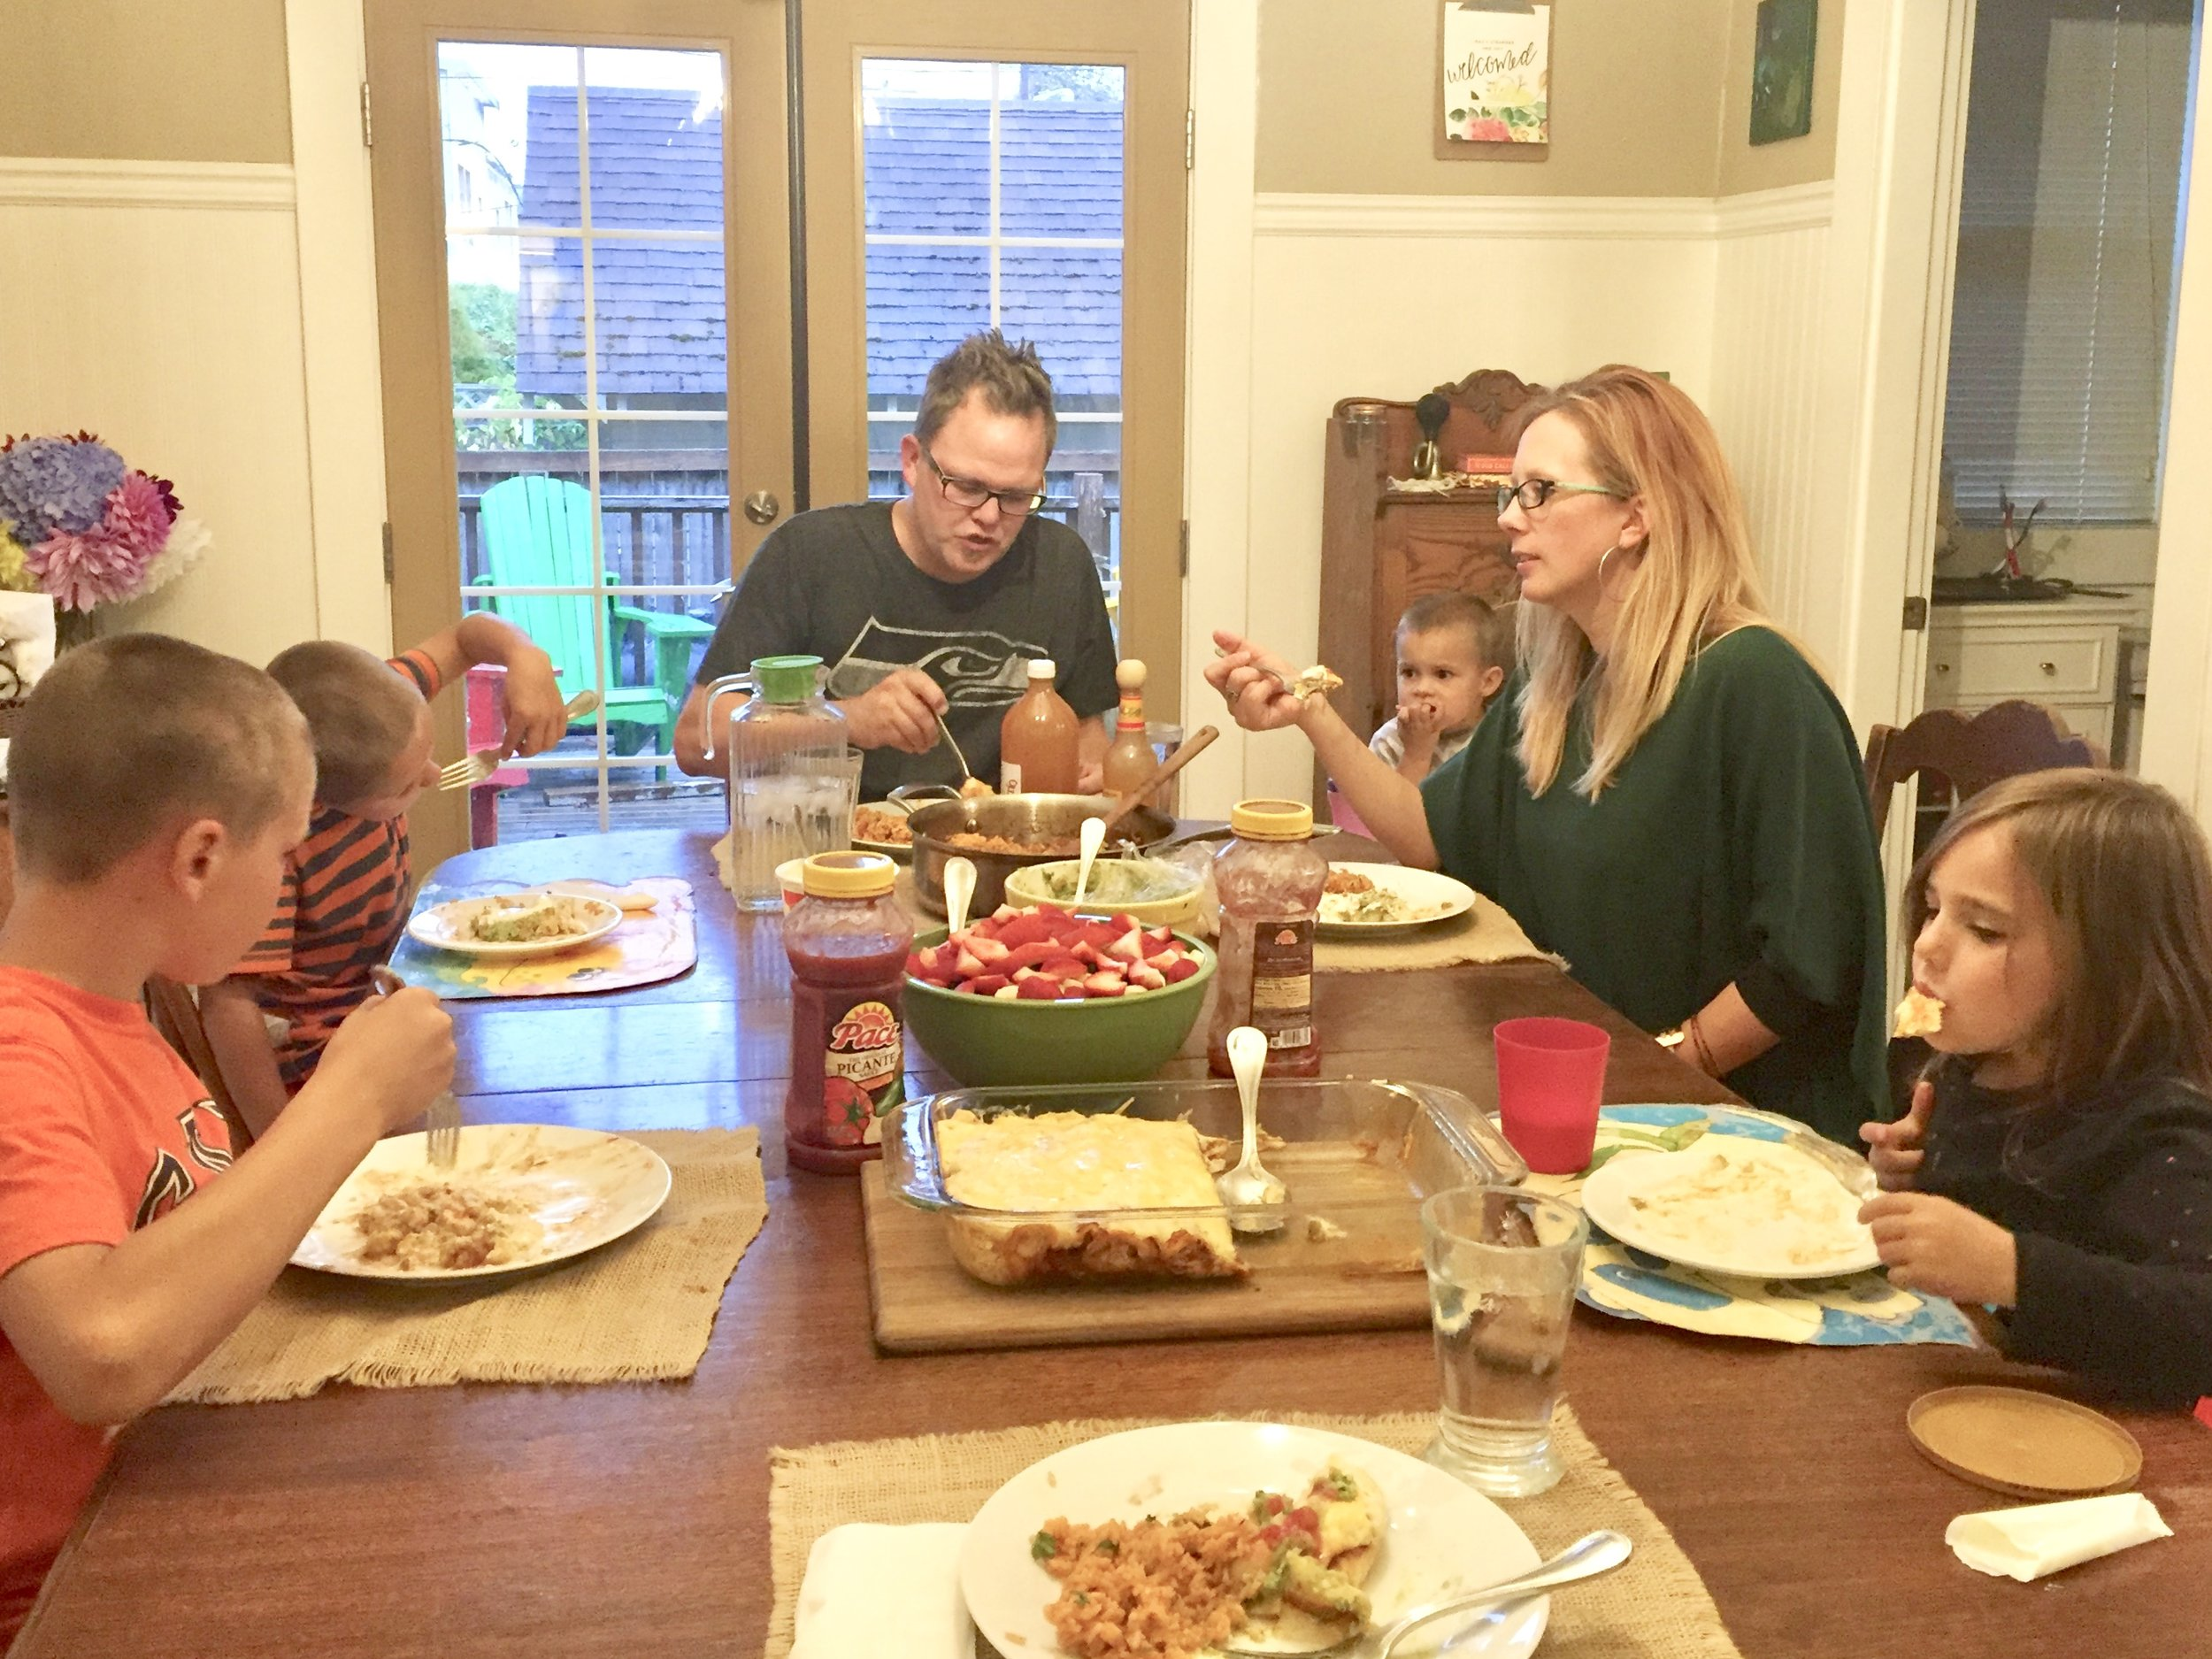 A normal family dinner at the Cooper table.